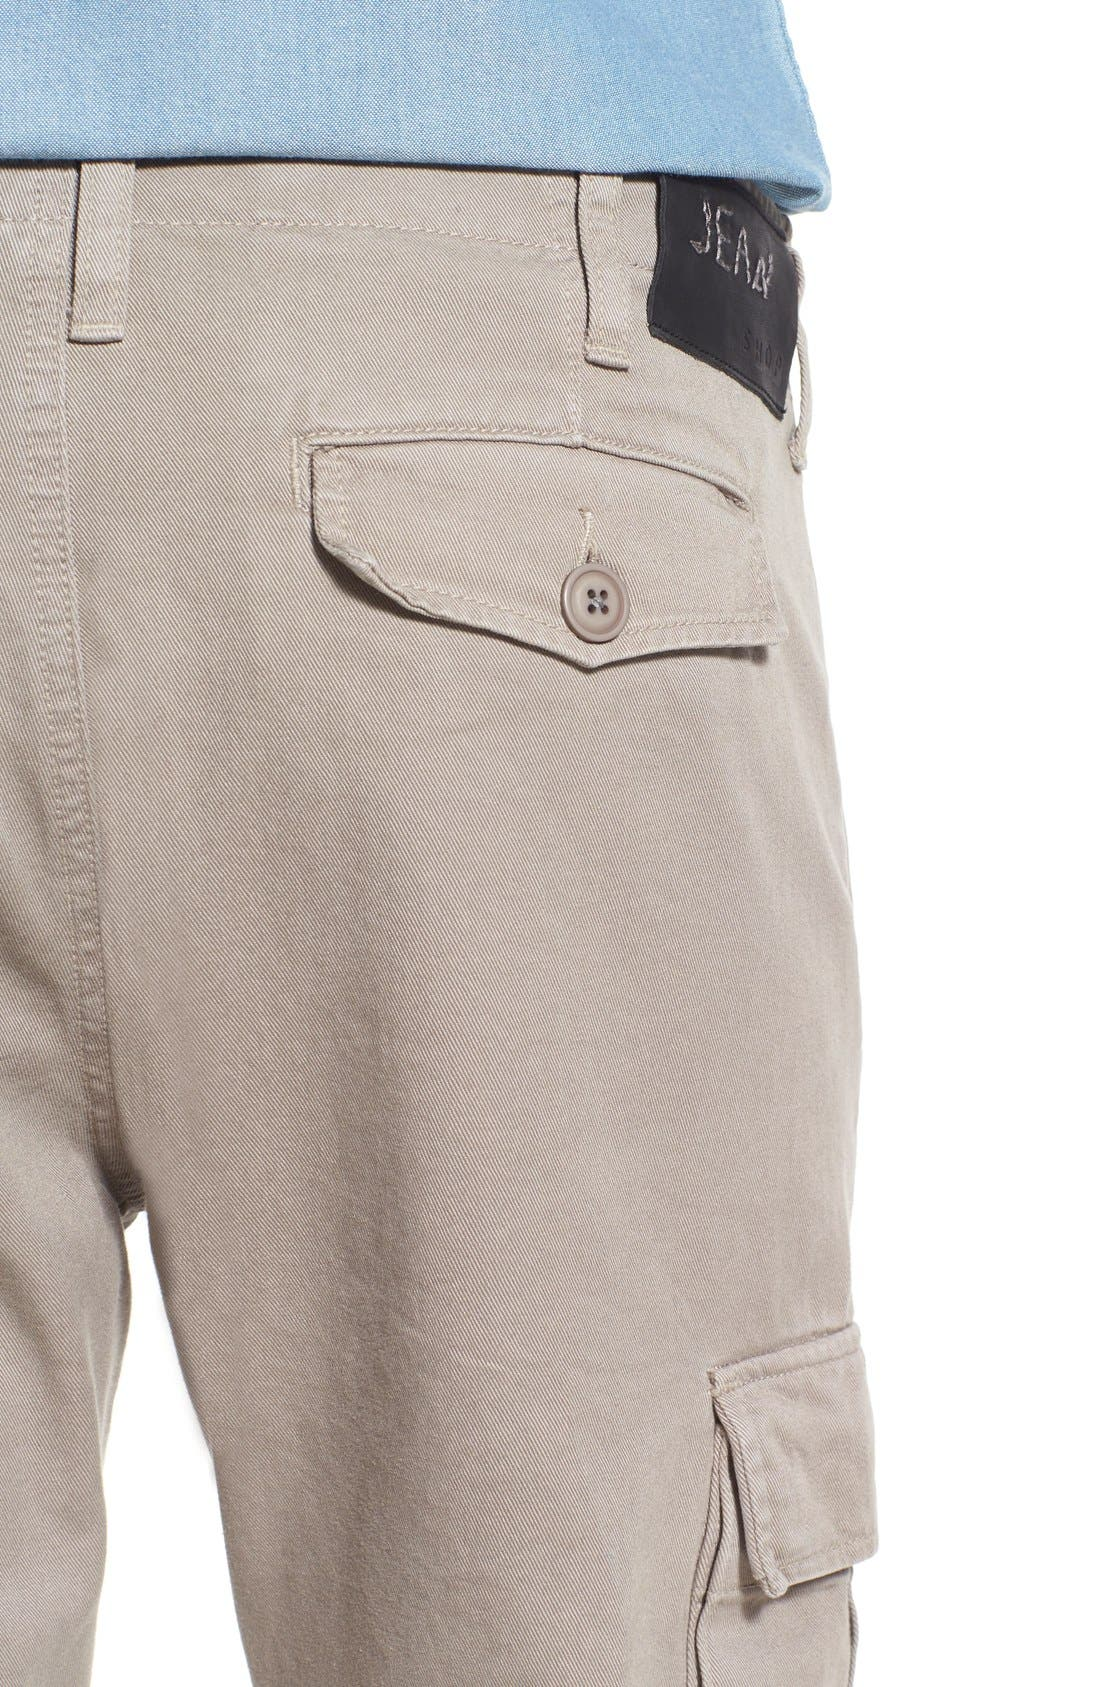 Slim Fit Selvedge Twill Cargo Pants,                             Alternate thumbnail 5, color,                             086